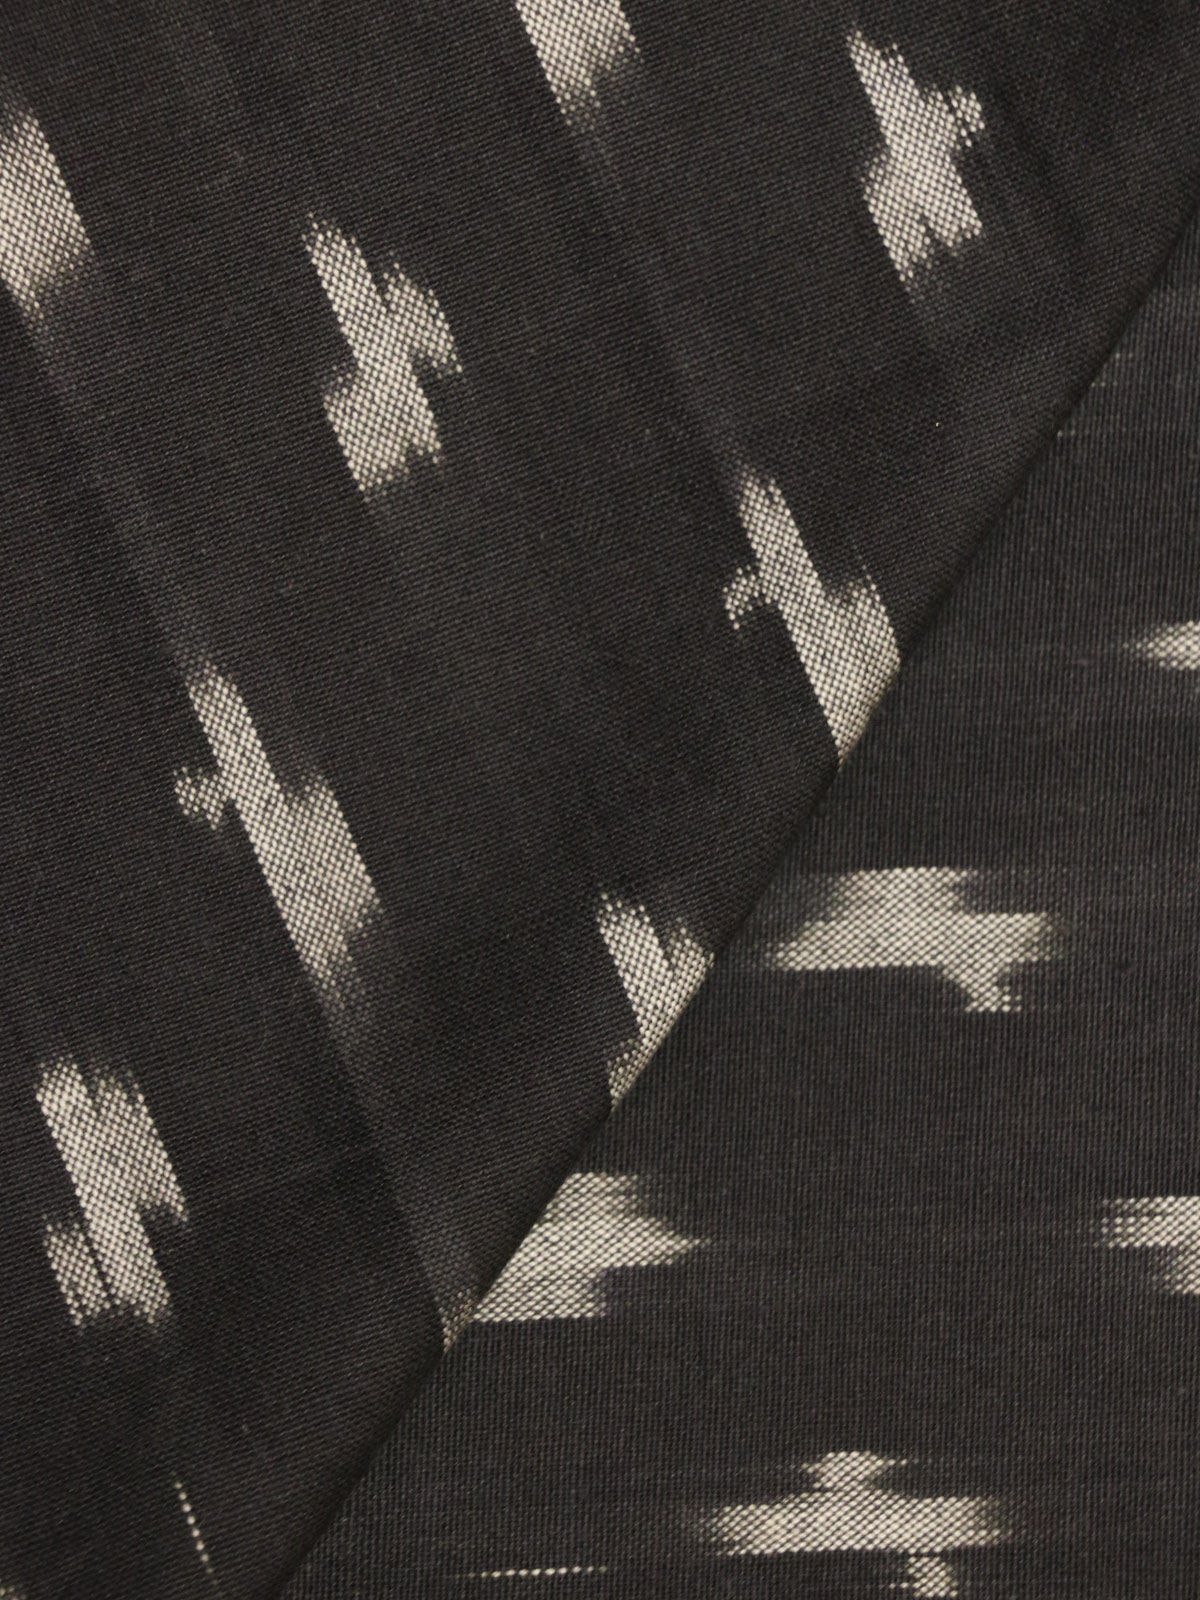 Black & White ikat handloom cotton fabric